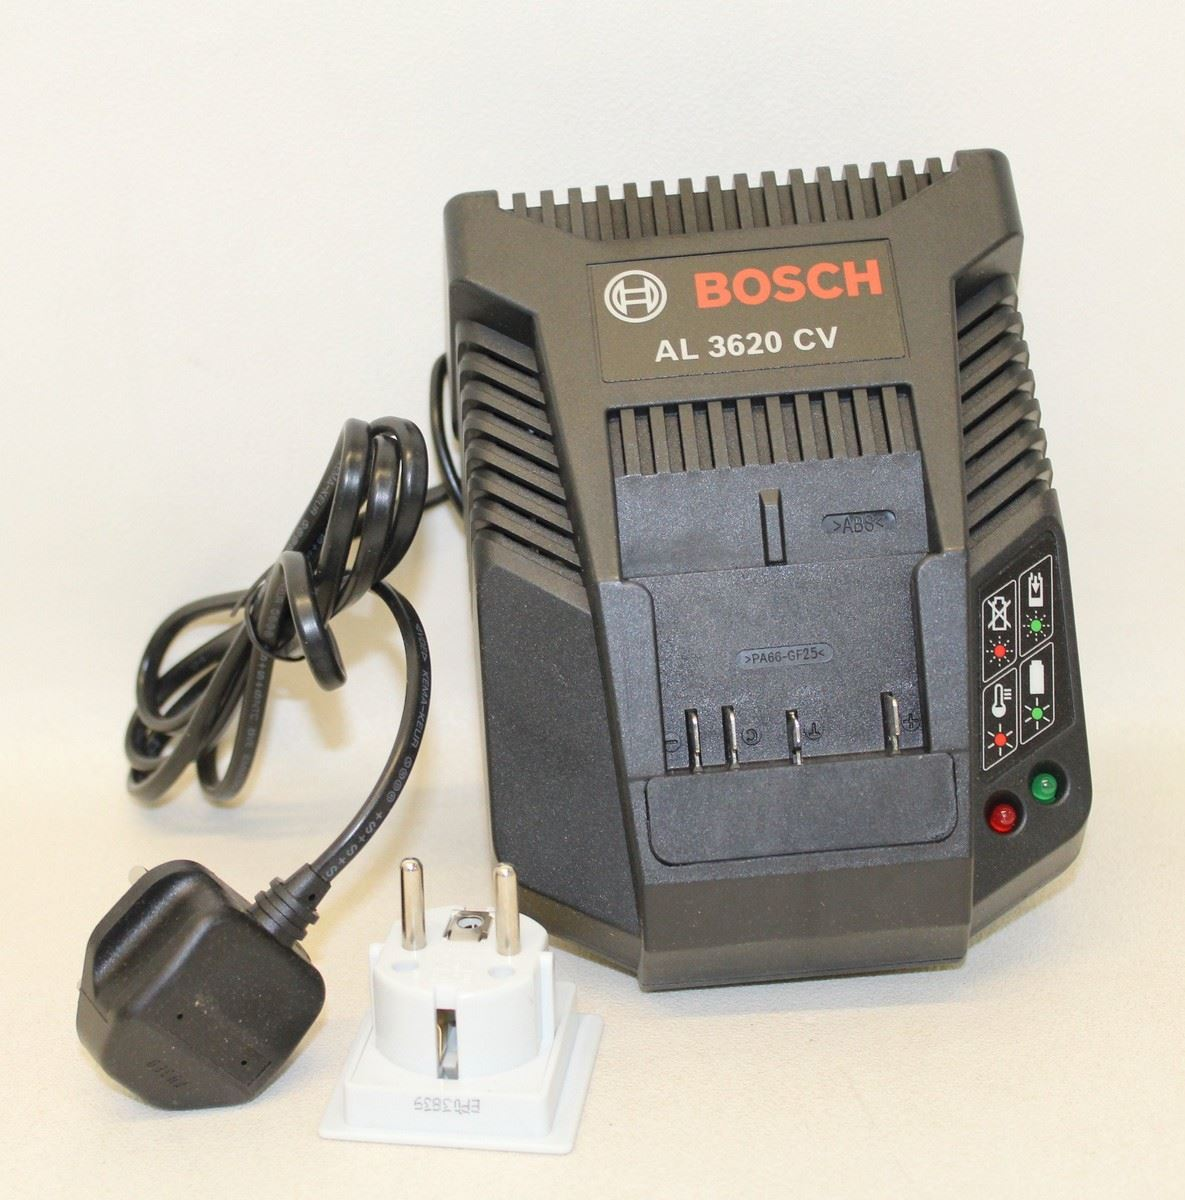 bnib bosch al 3620 cv 36v battery charger type f016800313 3165140660419 26072  u2022  u00a337 95